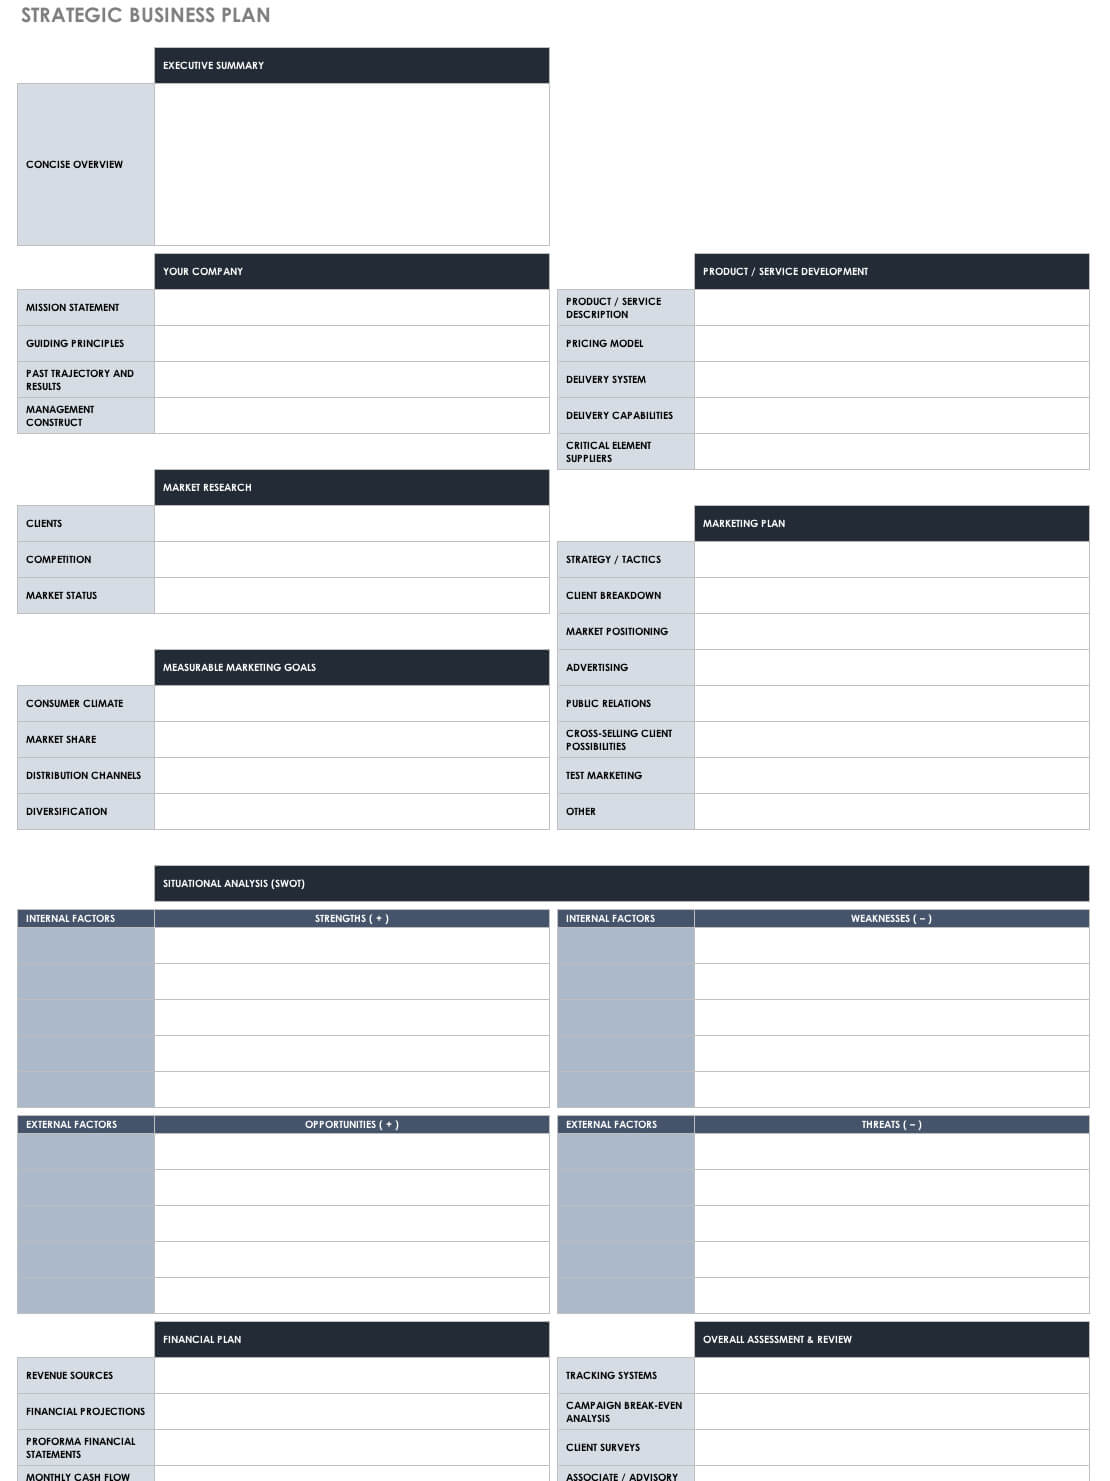 Free Strategic Planning Templates | Smartsheet Regarding Strategic Management Report Template